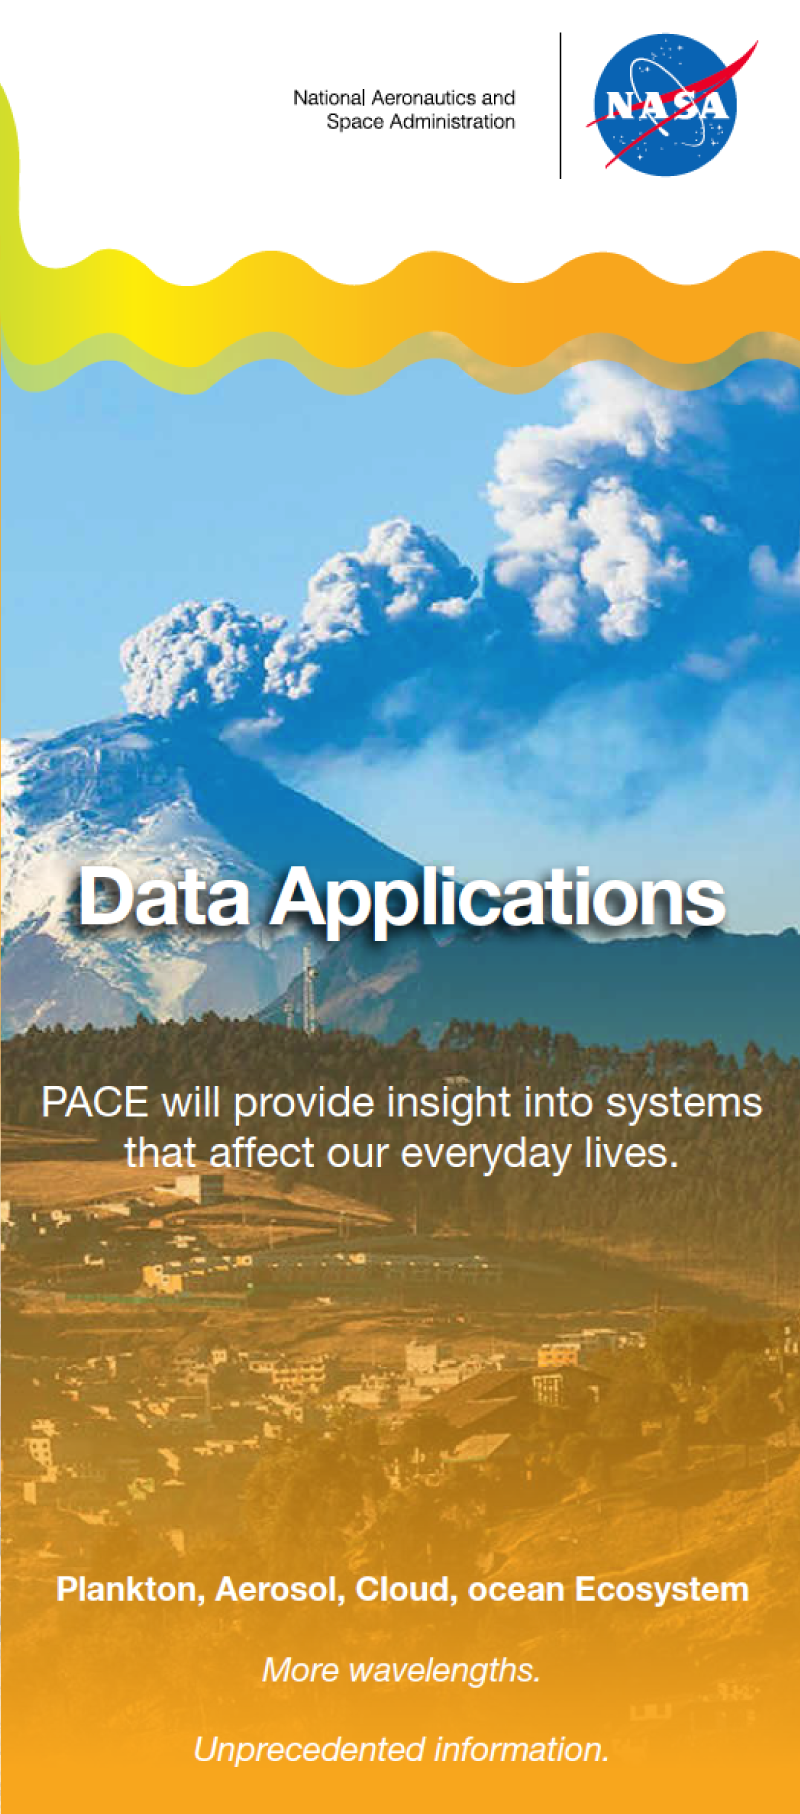 PACE will provide a combination of atmosphere and ocean observations to benefit society in the areas of water quality, human health, fisheries management, ecological forecasting, disaster impacts, and air quality.